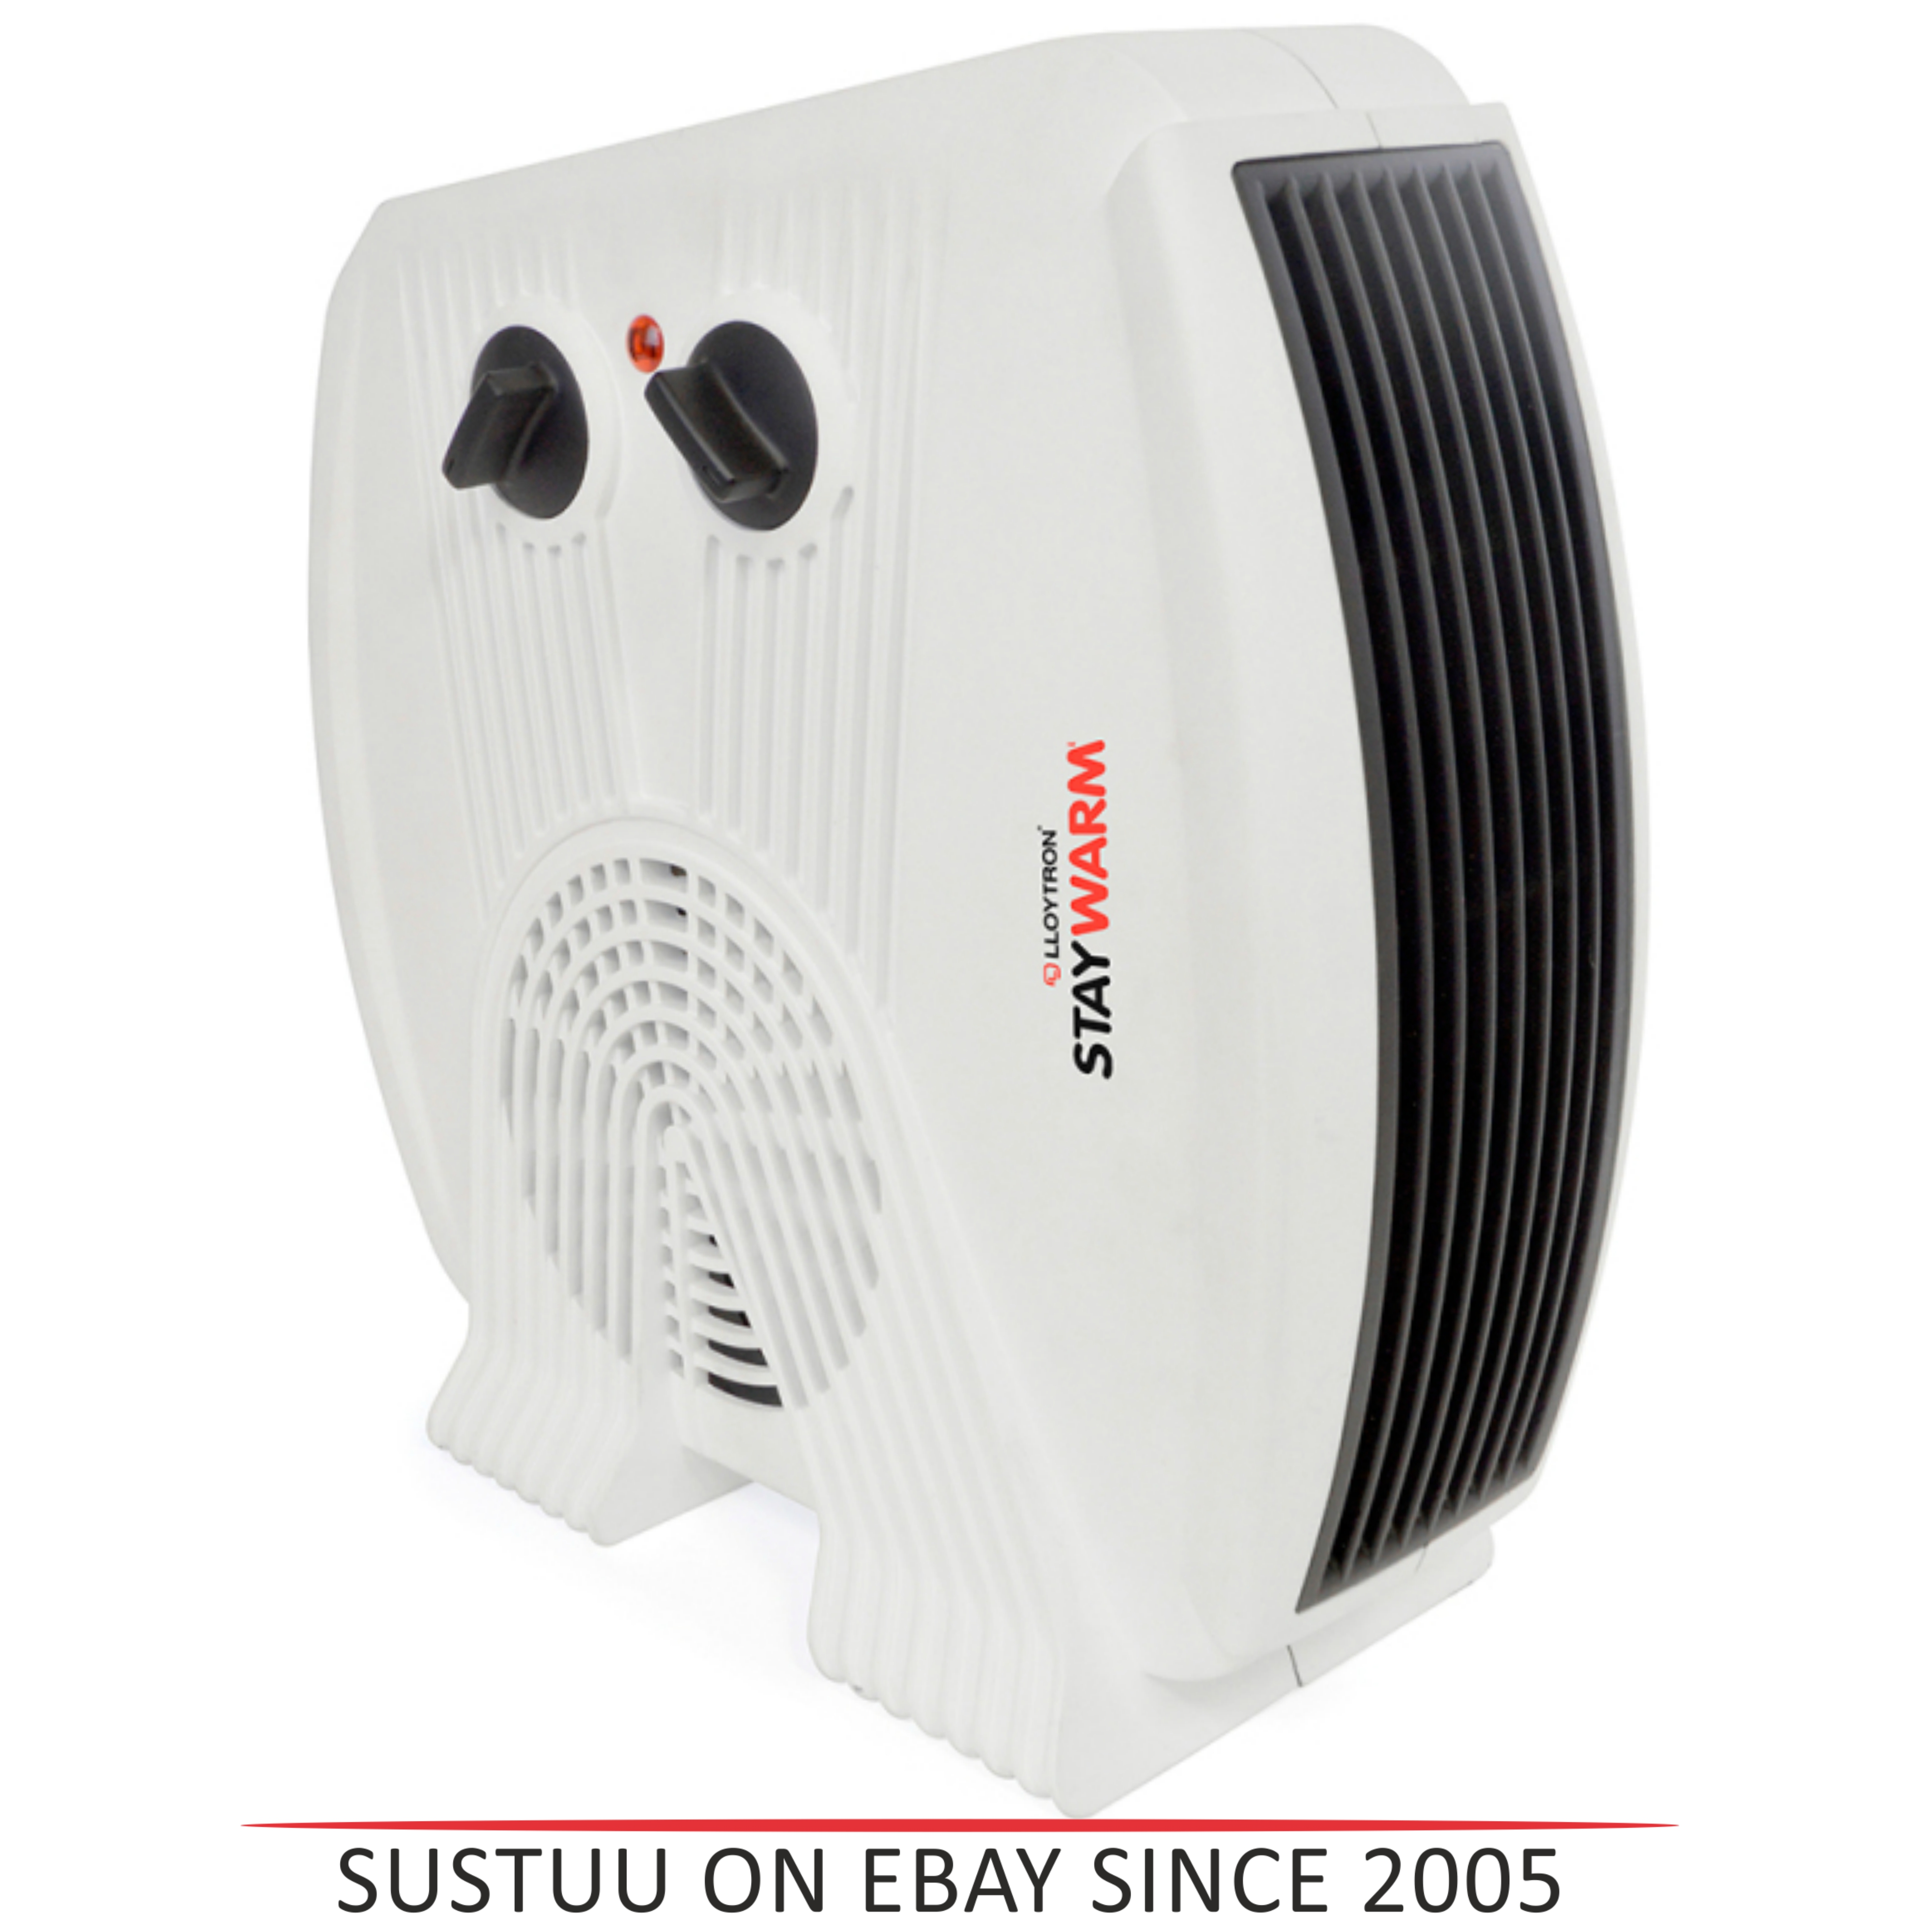 Lloytron F2035WH Staywarm 3kw Upright & Flatbed Heater | Automatic Cut-off | White |